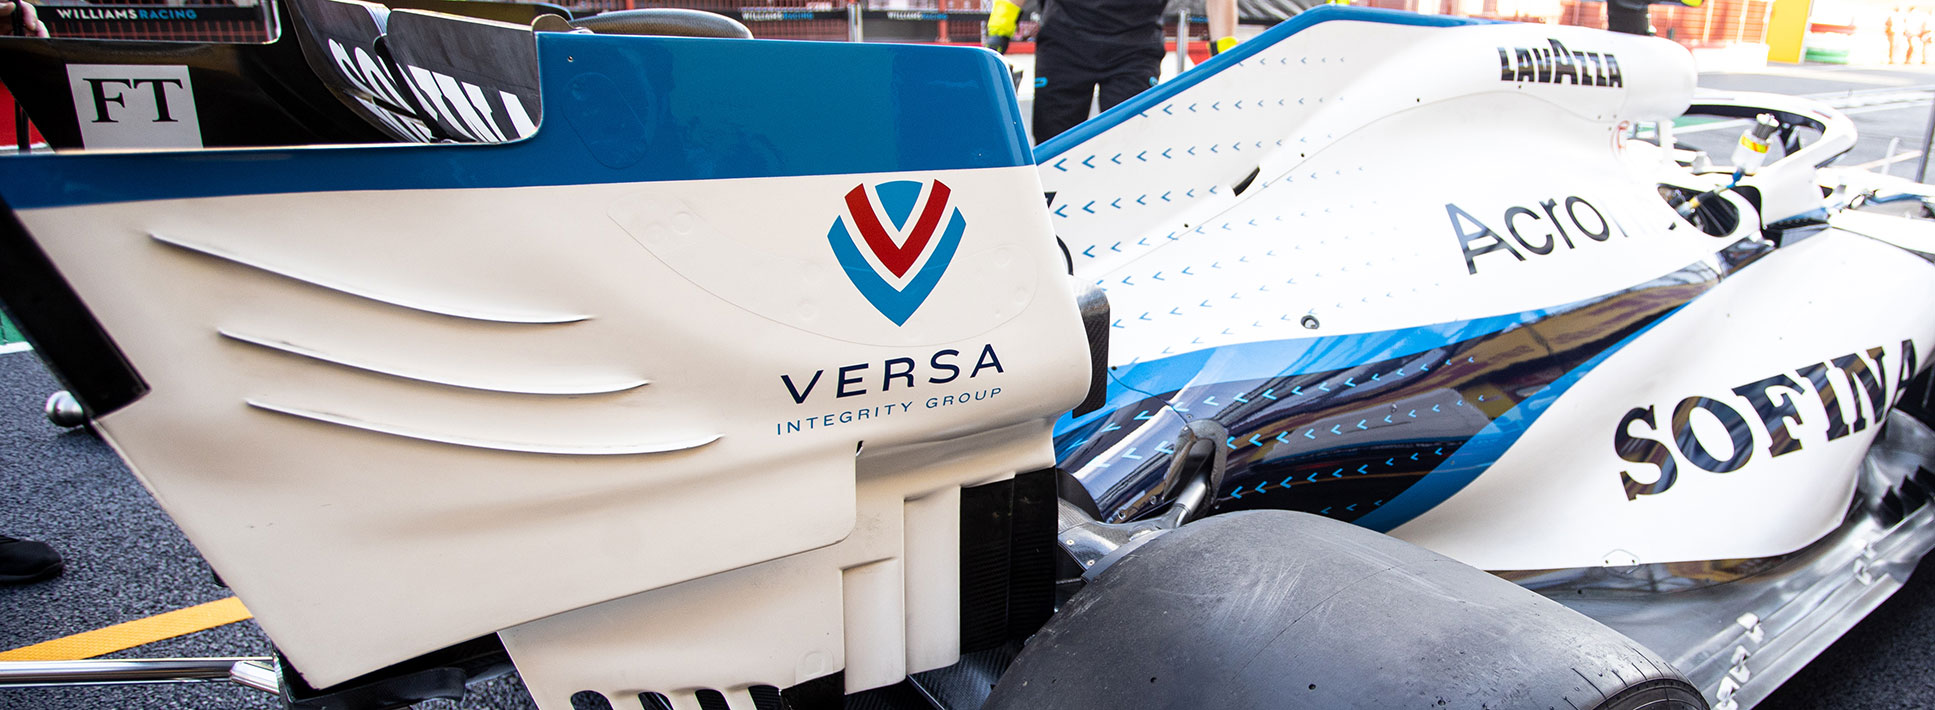 Williams Racing Announces Partnership with Versa Integrity Group